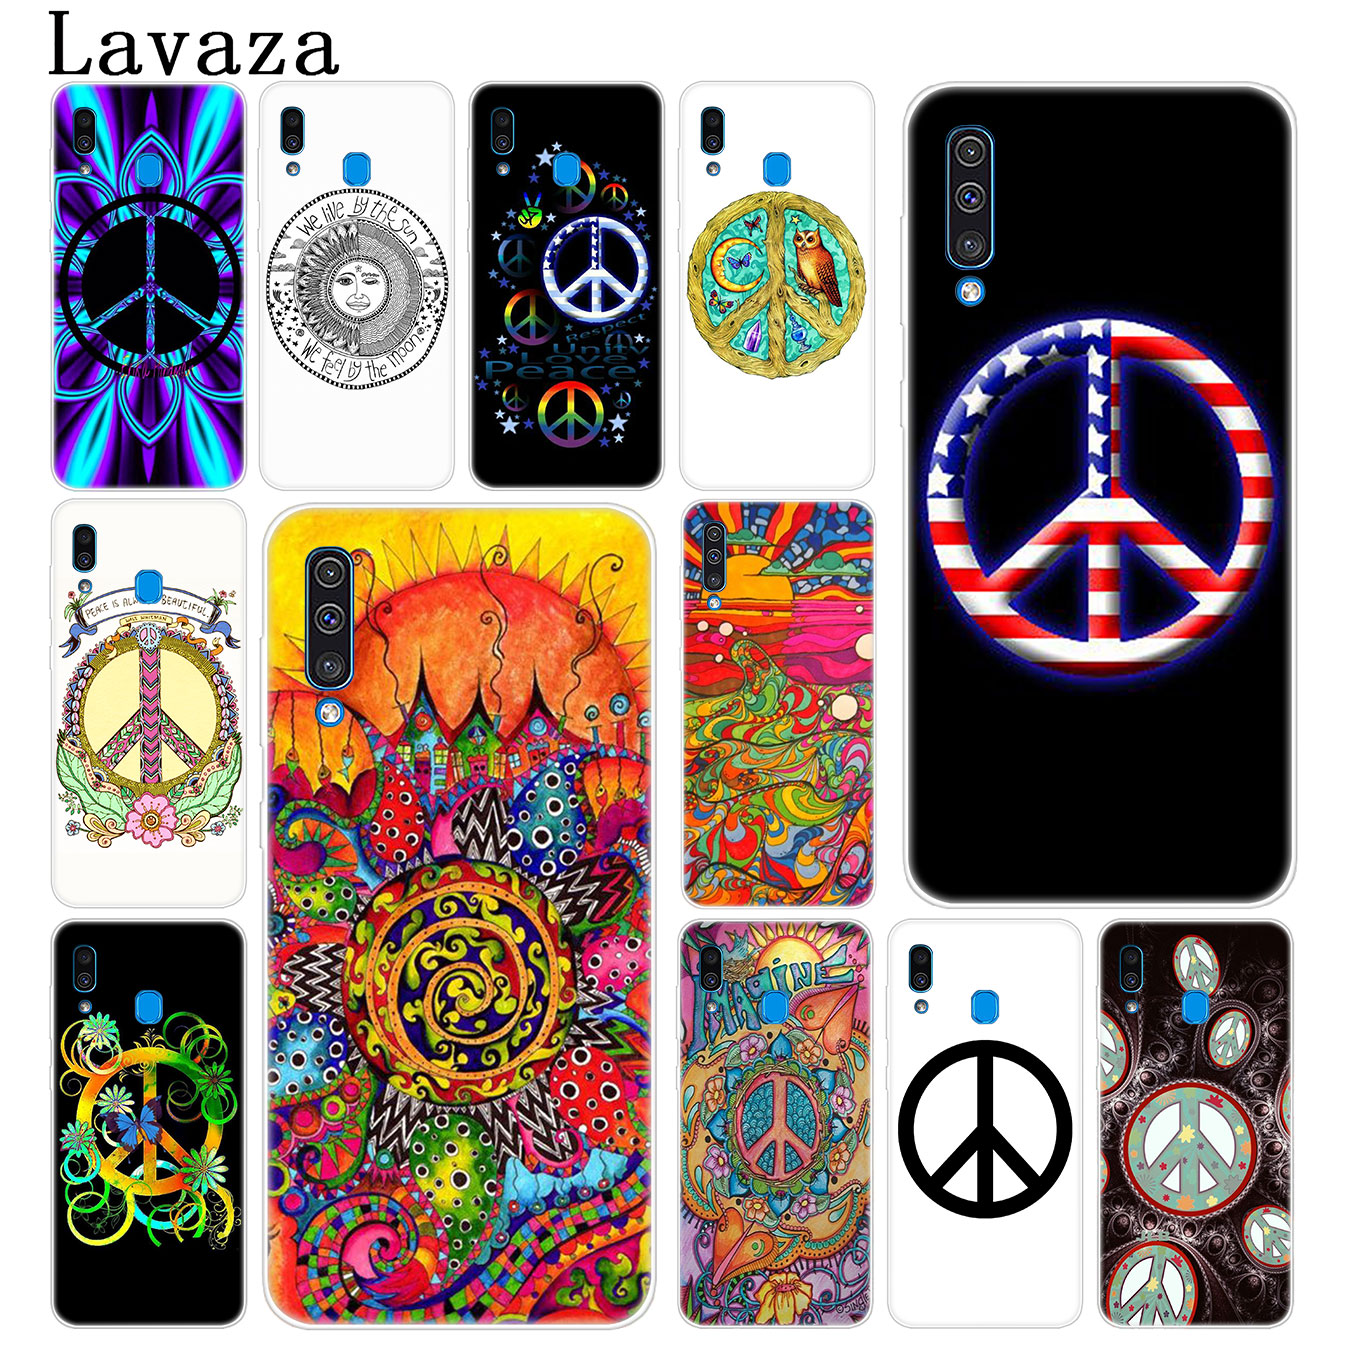 Lavaza Hippy Hippie Psychedelic Art Peace Phone Case for Samsung Galaxy A70 A60 A50 A40 A30 A20 A10 M10 M20 M30 M40 A20e Cover image